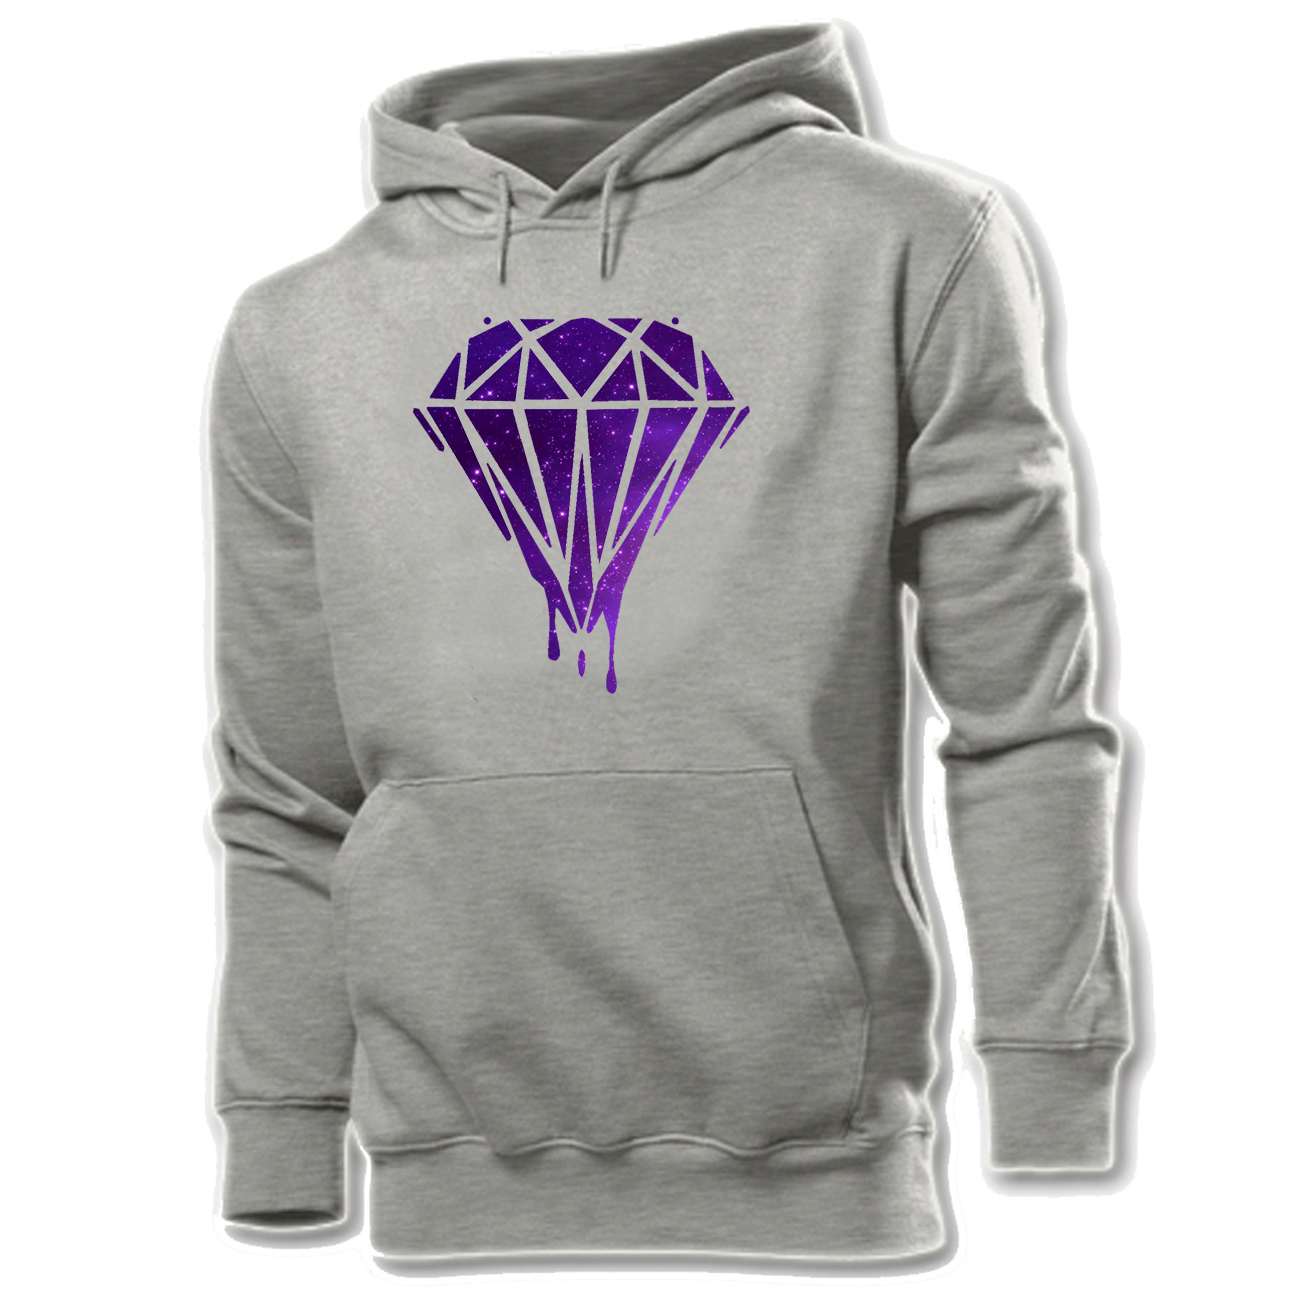 Compare Prices on Purple Hoodie- Online Shopping/Buy Low Price ...